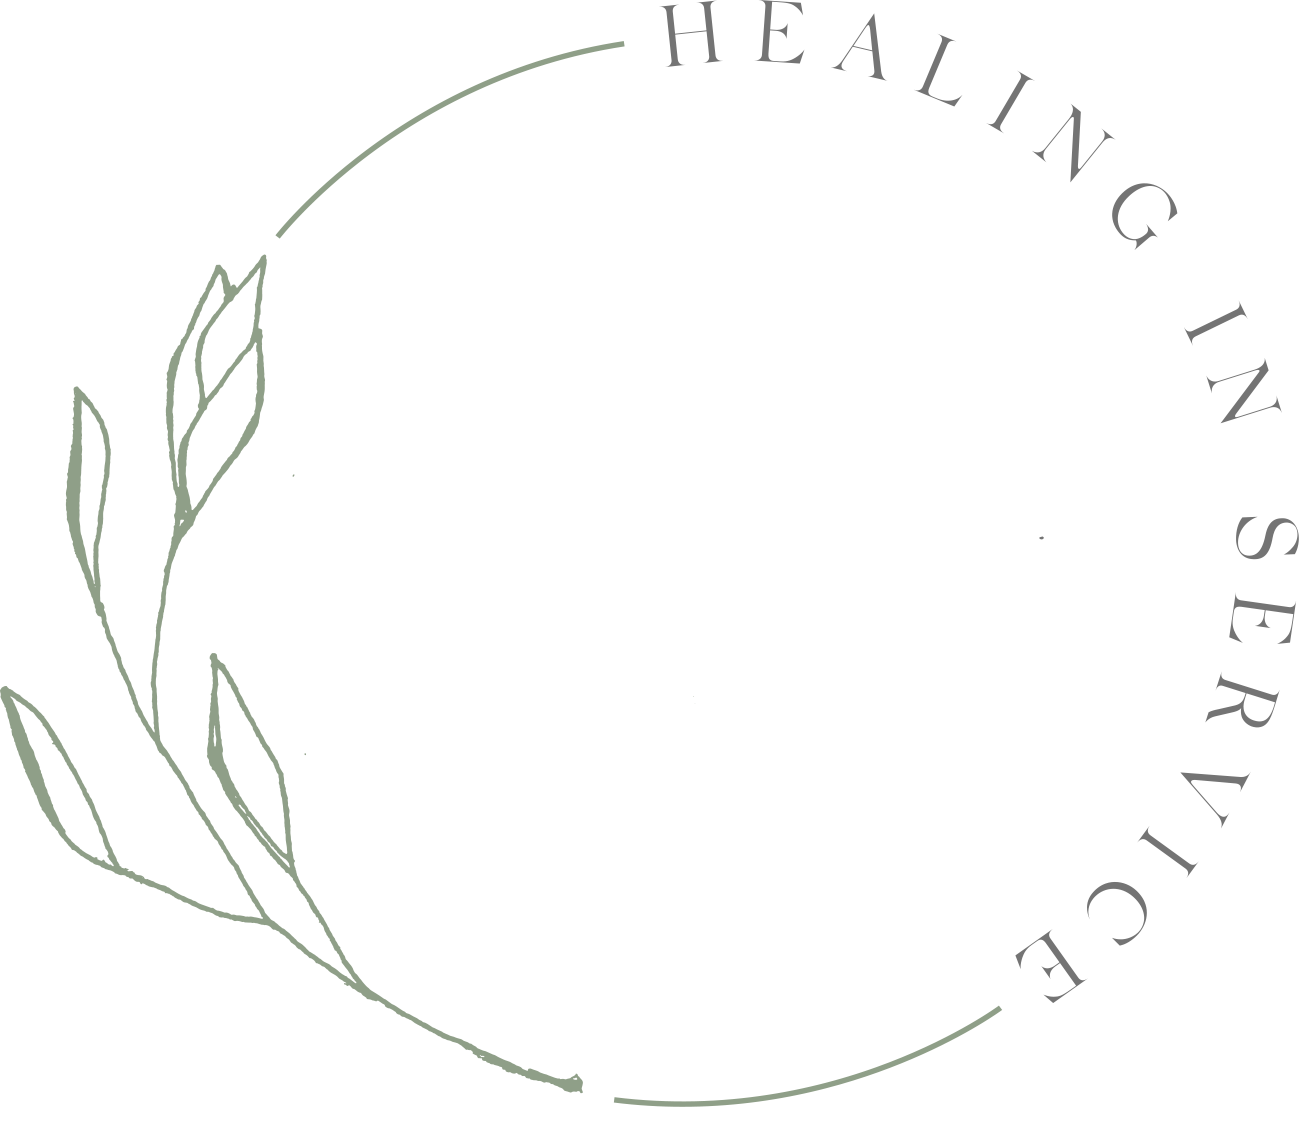 Healing in Service